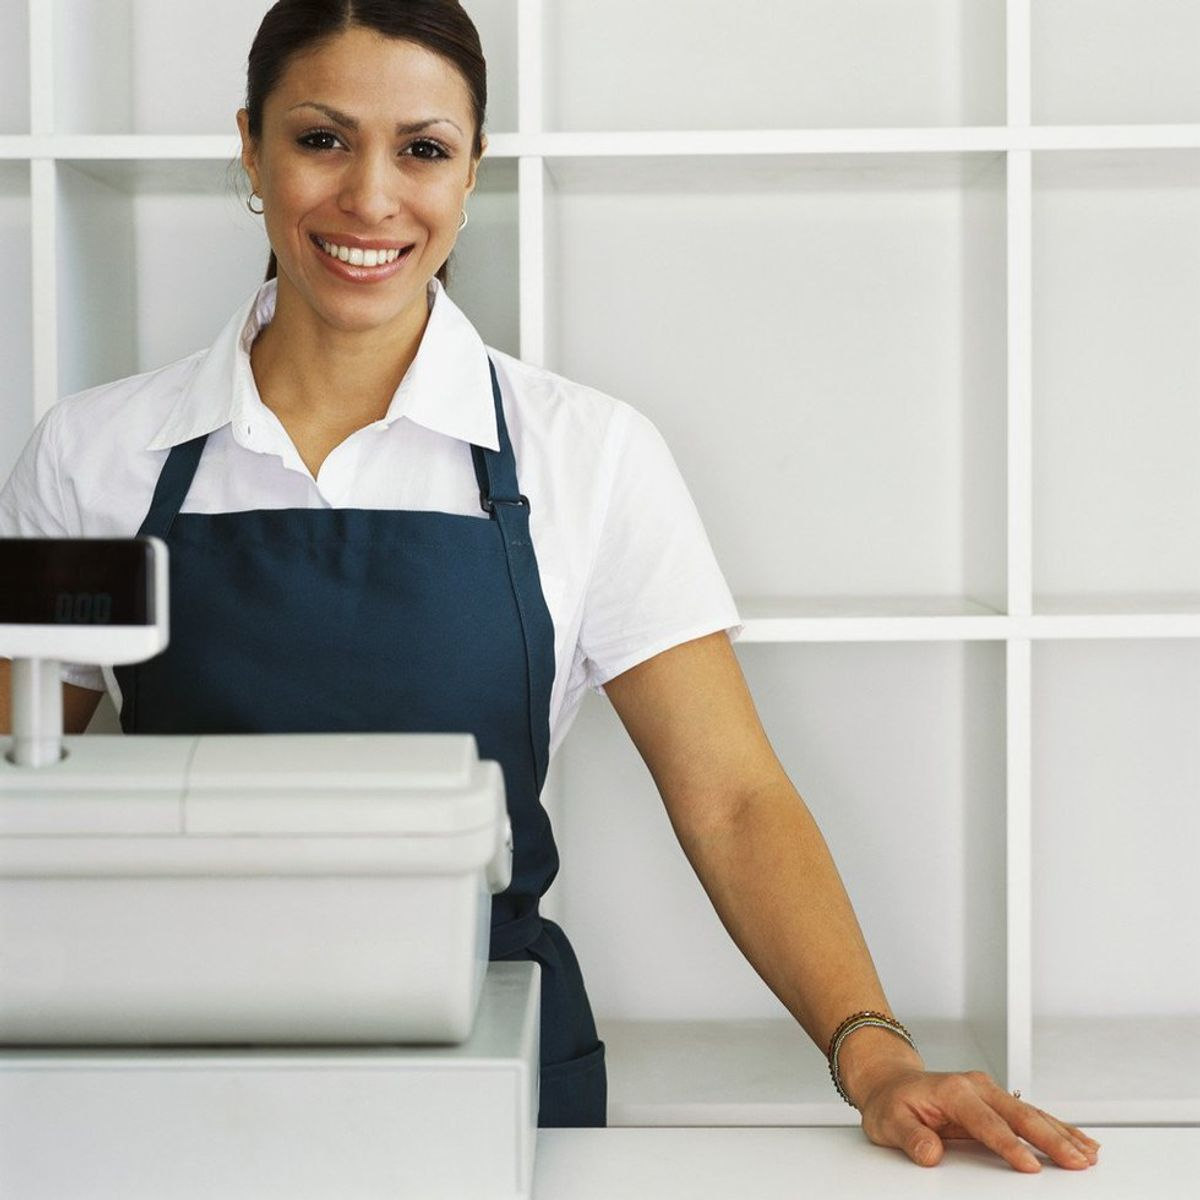 Irritating Instances For Cashiers